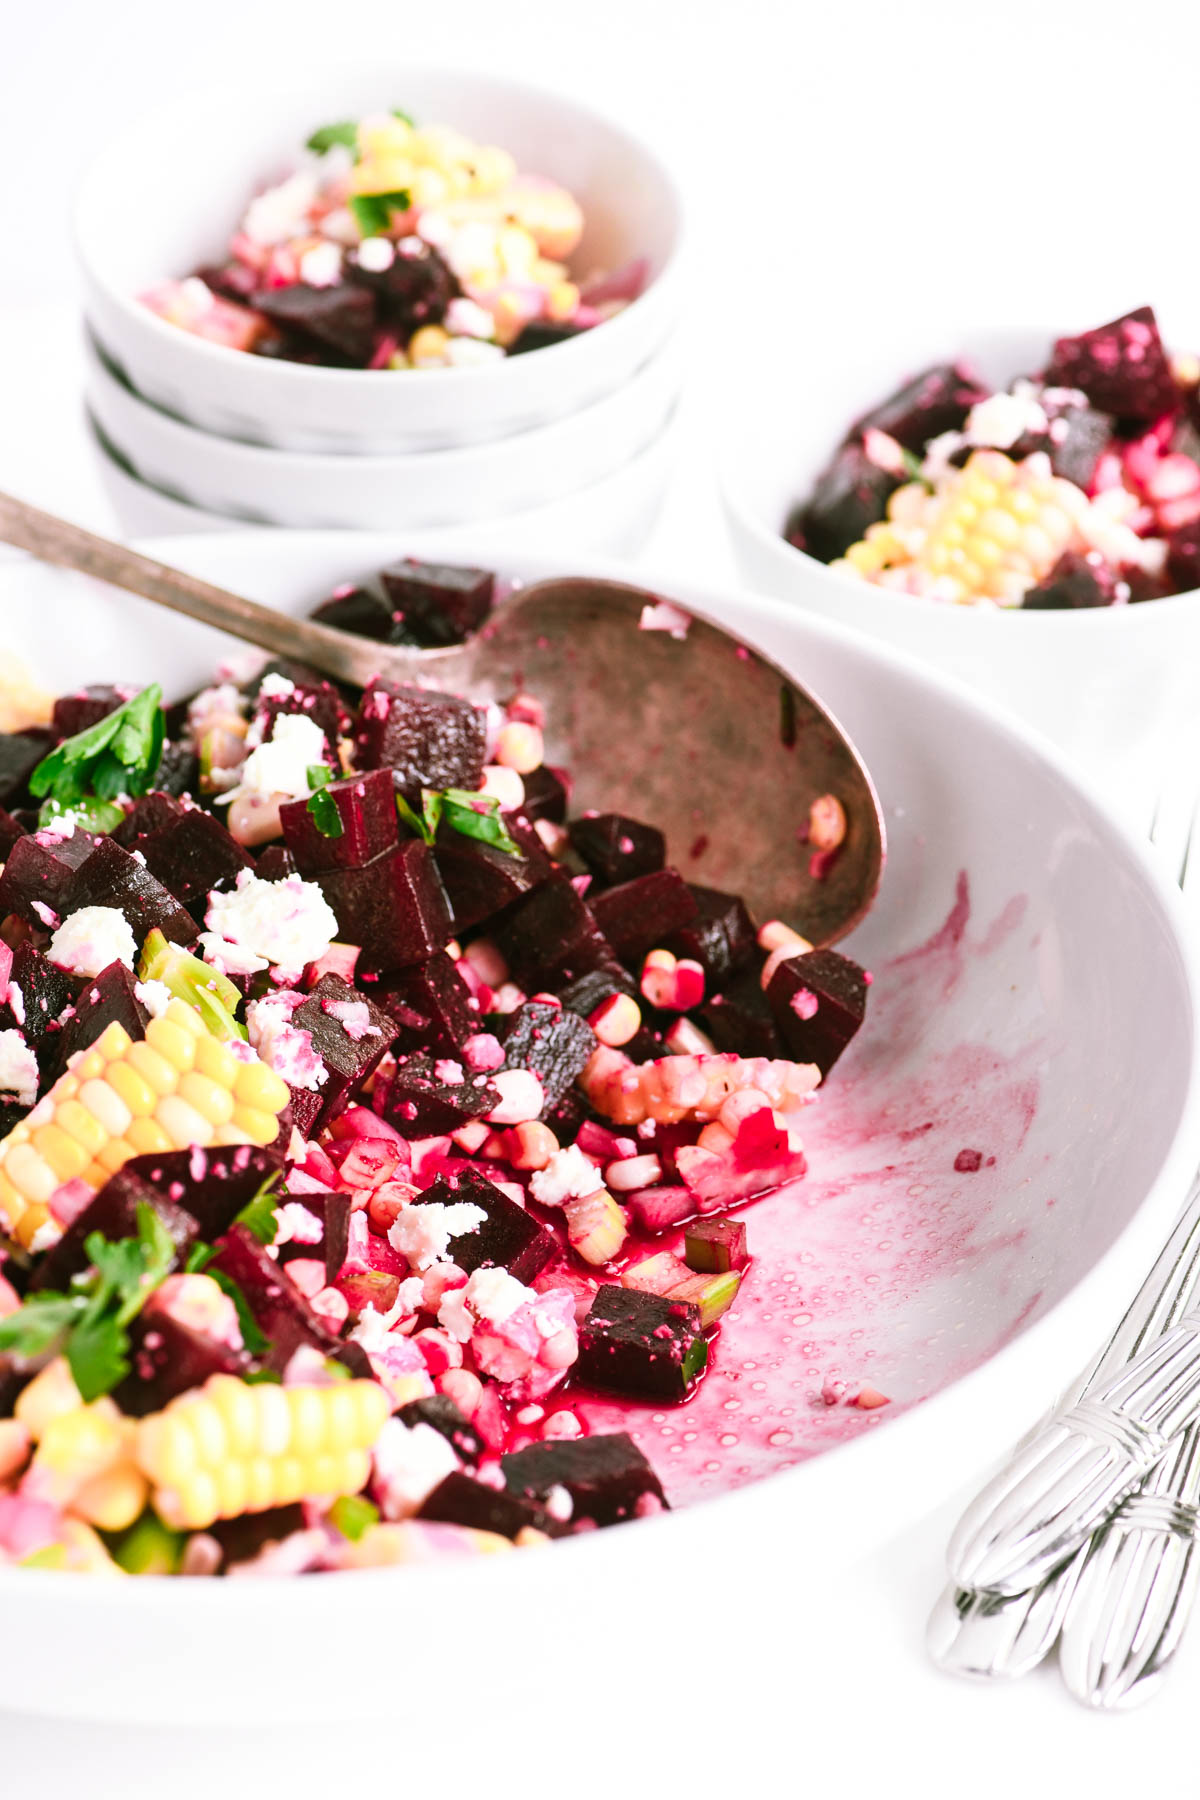 beet and corn salad, with white bowls